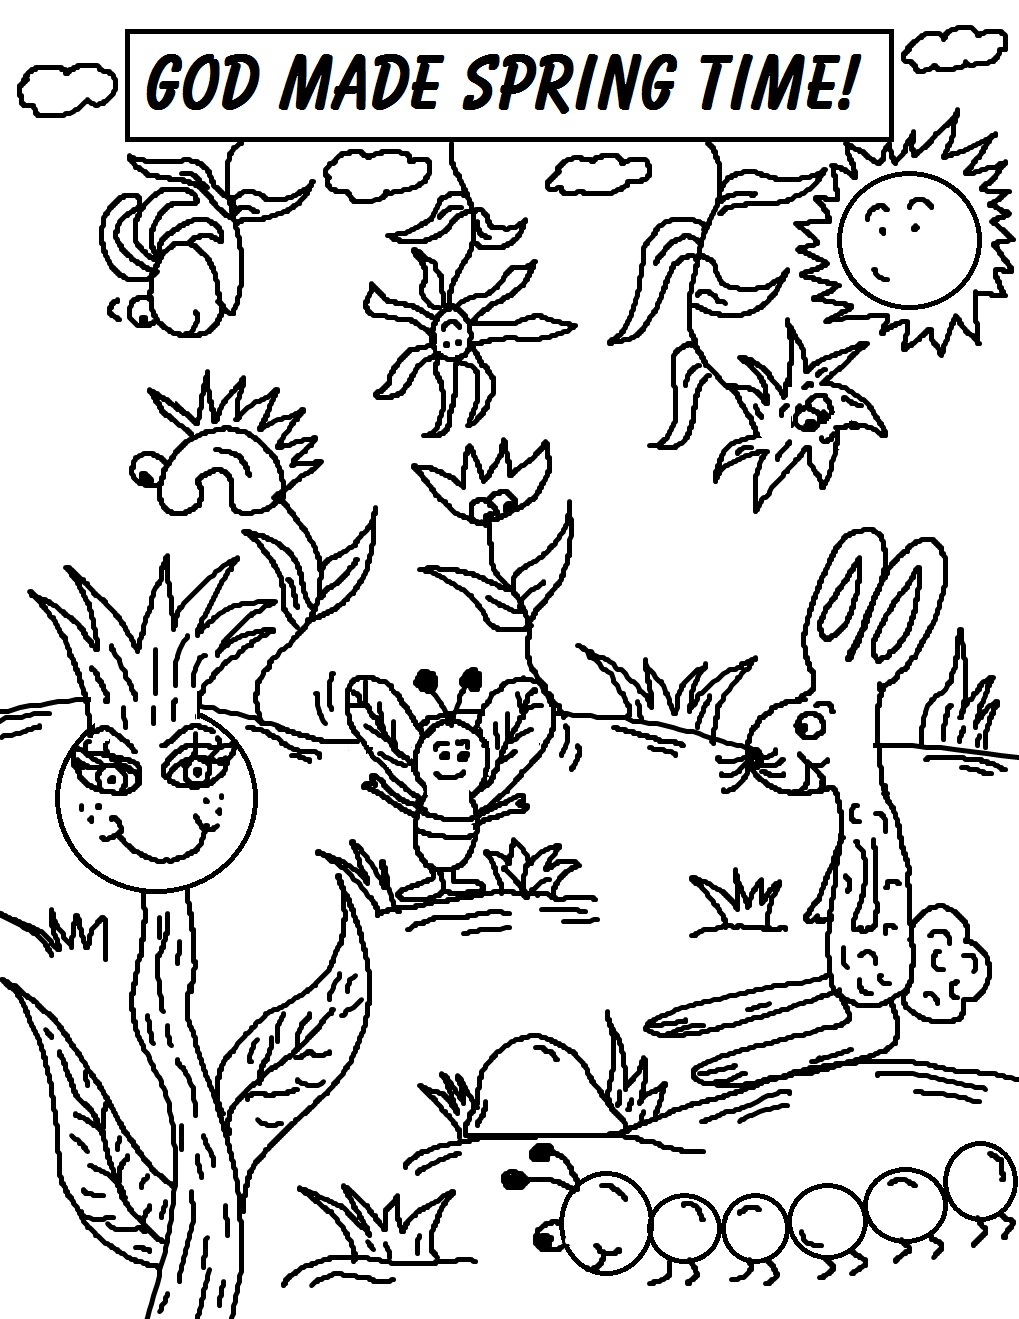 church house collection blog spring time coloring pages spring bible puzzles spring bible coloring pages